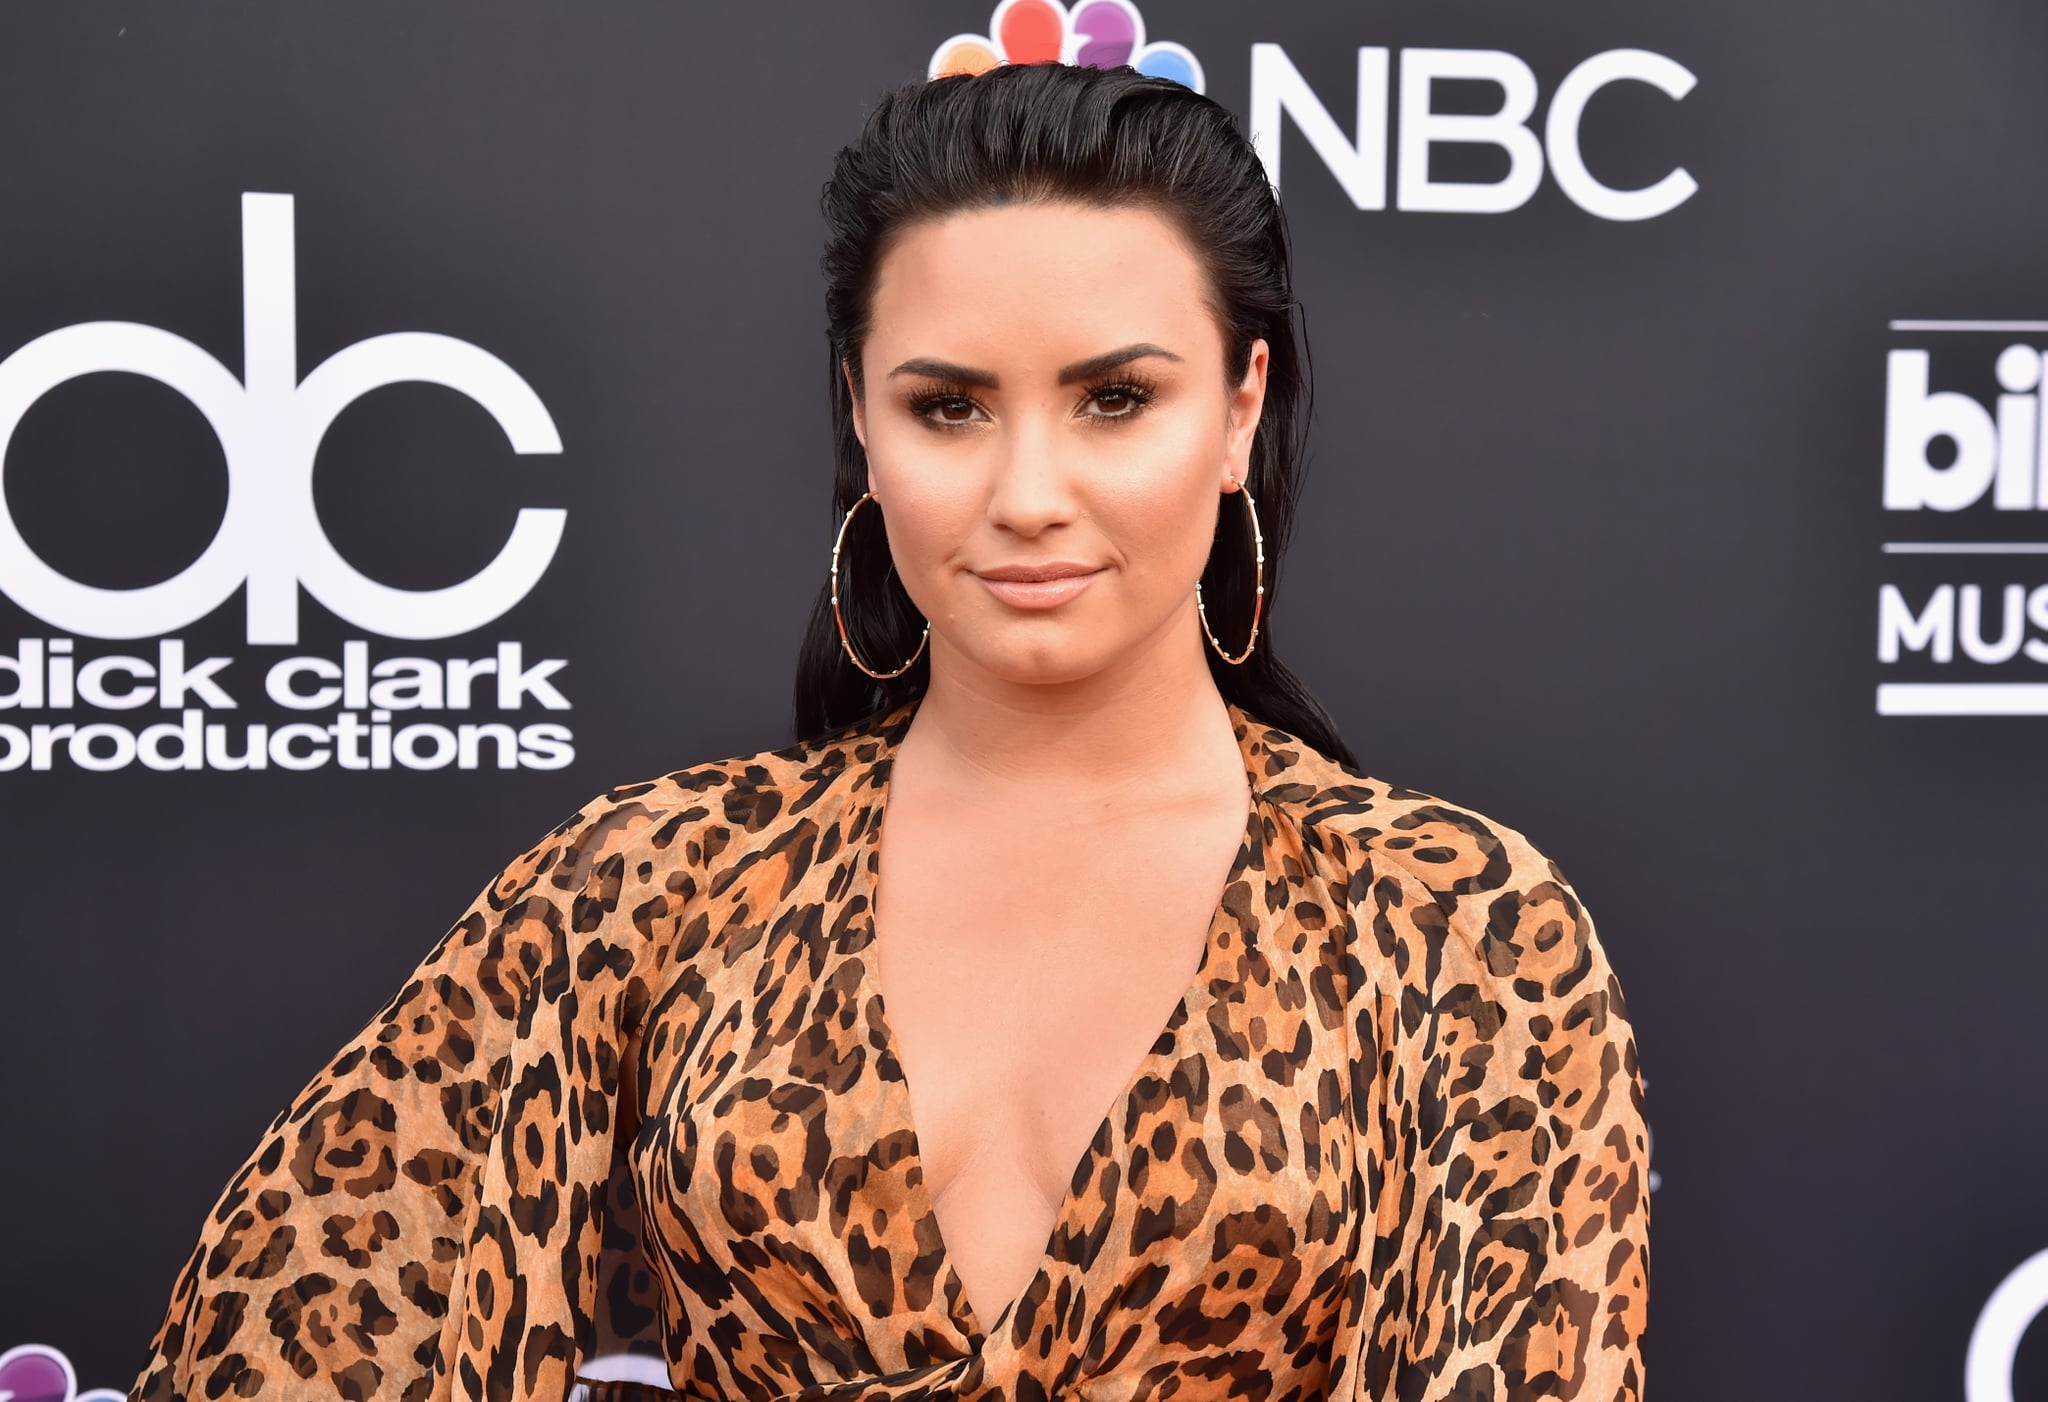 LAS VEGAS, NV - MAY 20:  Recording artist Demi Lovato attends the 2018 Billboard Music Awards at MGM Grand Garden Arena on May 20, 2018 in Las Vegas, Nevada.  (Photo by Jeff Kravitz/FilmMagic)